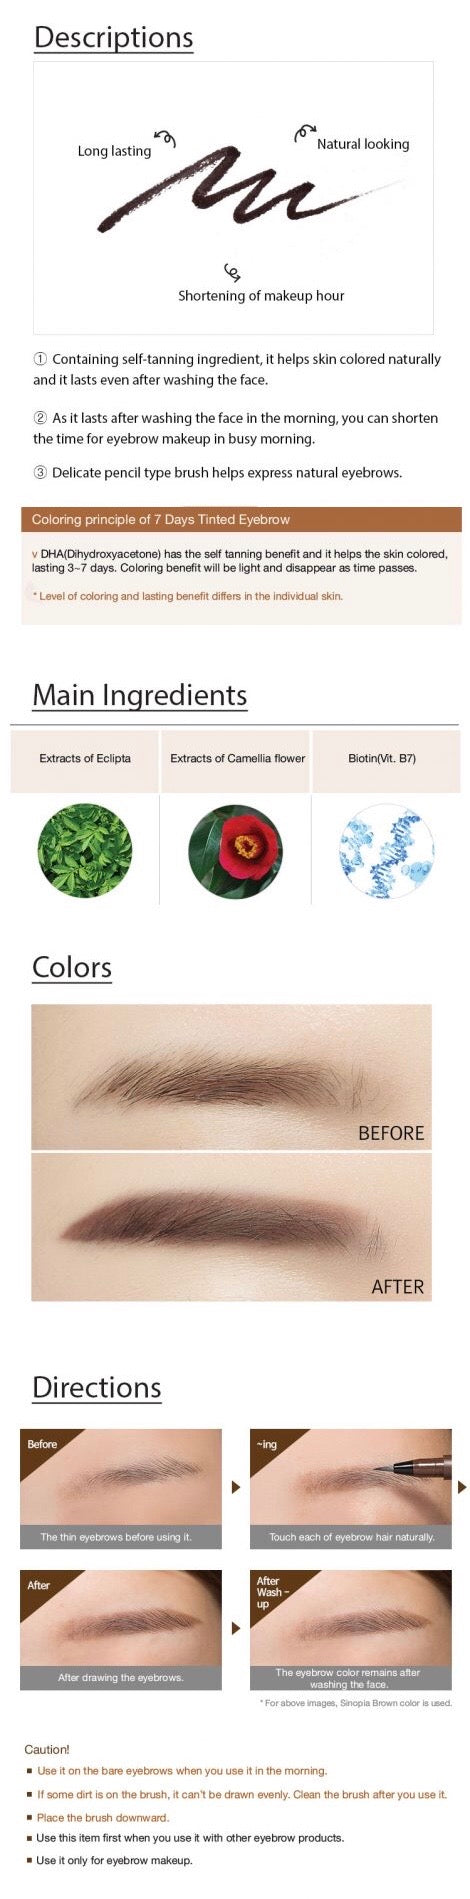 MISSHA 7Days Tinted Eyebrow 0.8ml Glam Touch